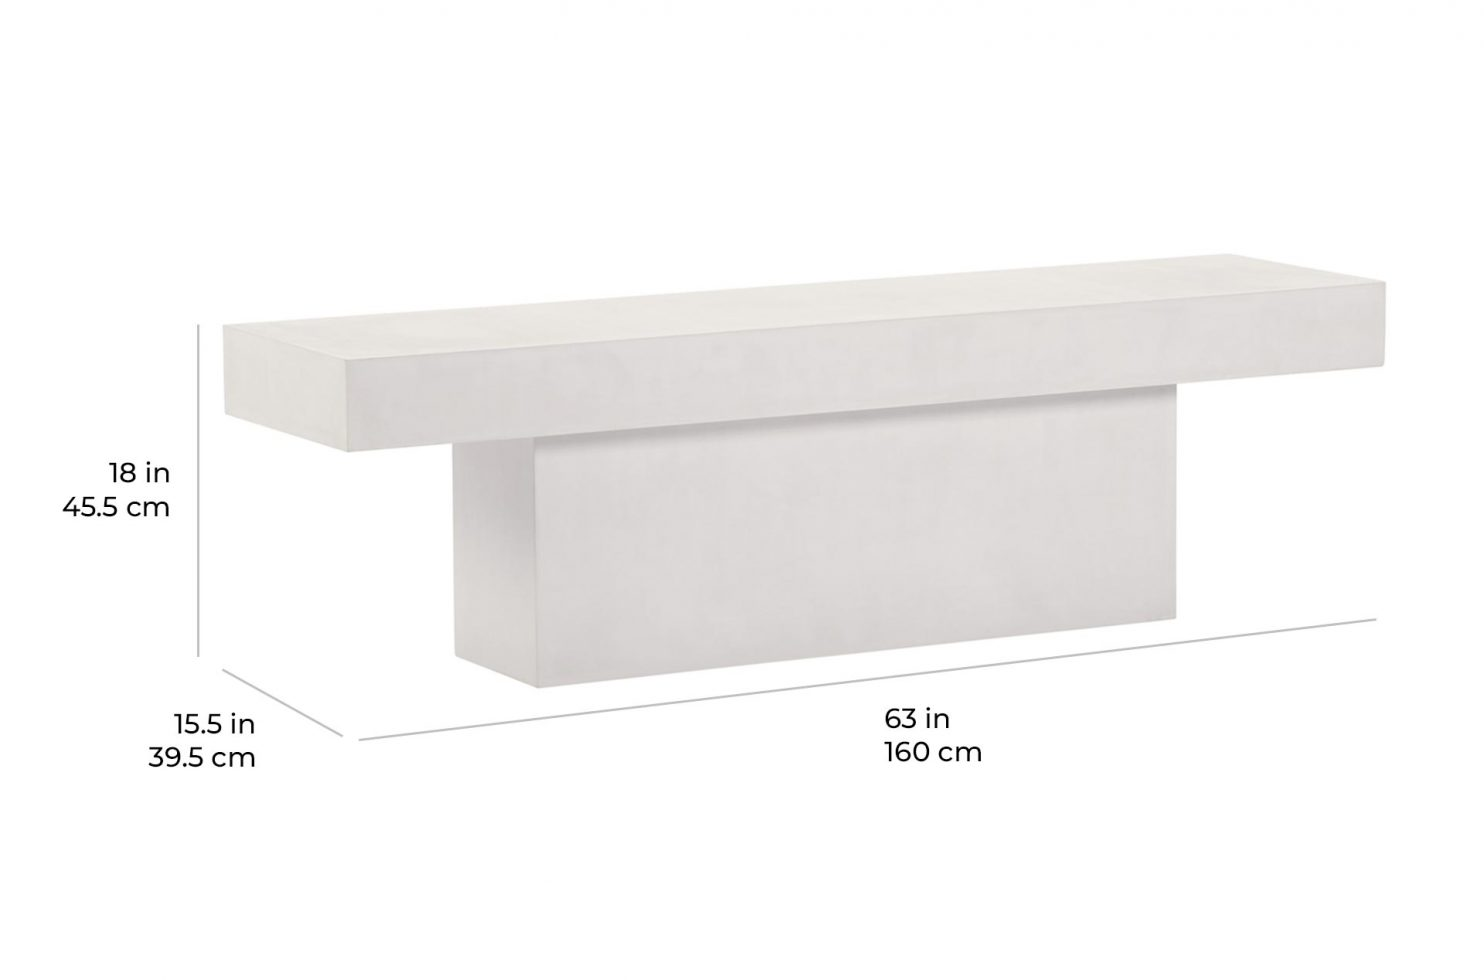 perp t bench P501992202 scale dims